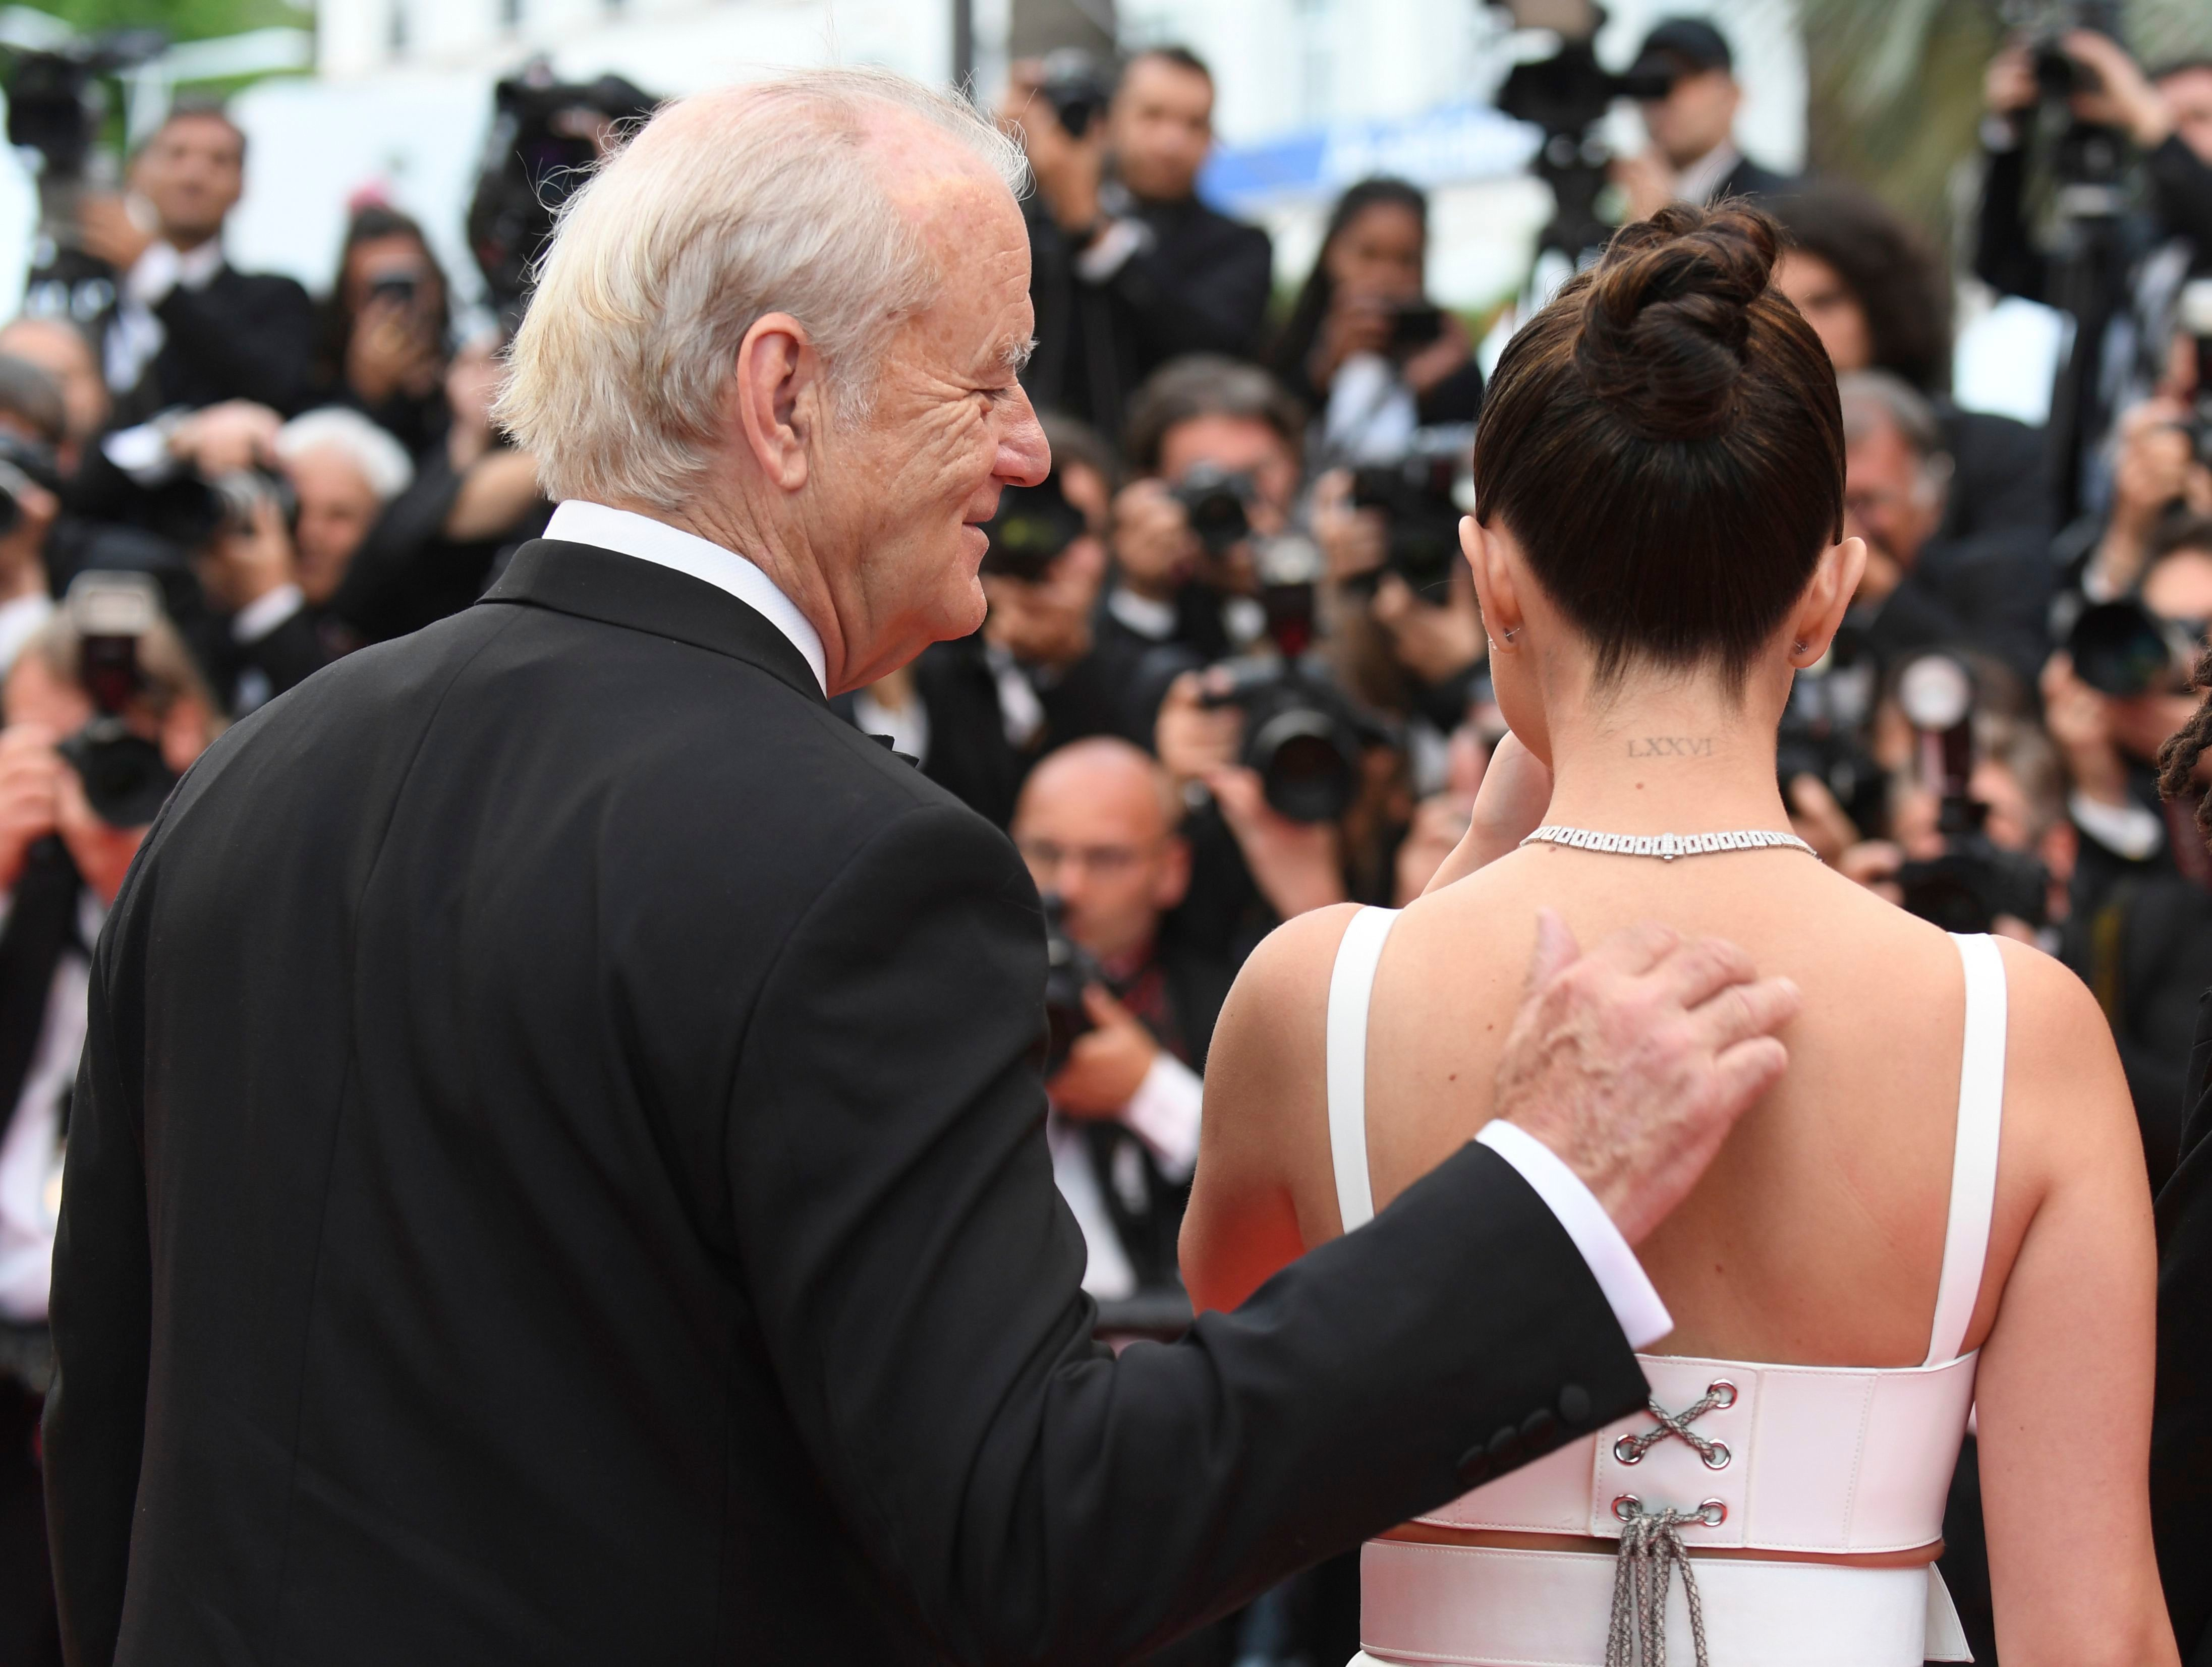 """Bill Murray and Selena Gomez attend the Cannes Film festival premiere of their film """"The Dead Don't Die"""" in France on May 14, 2019."""